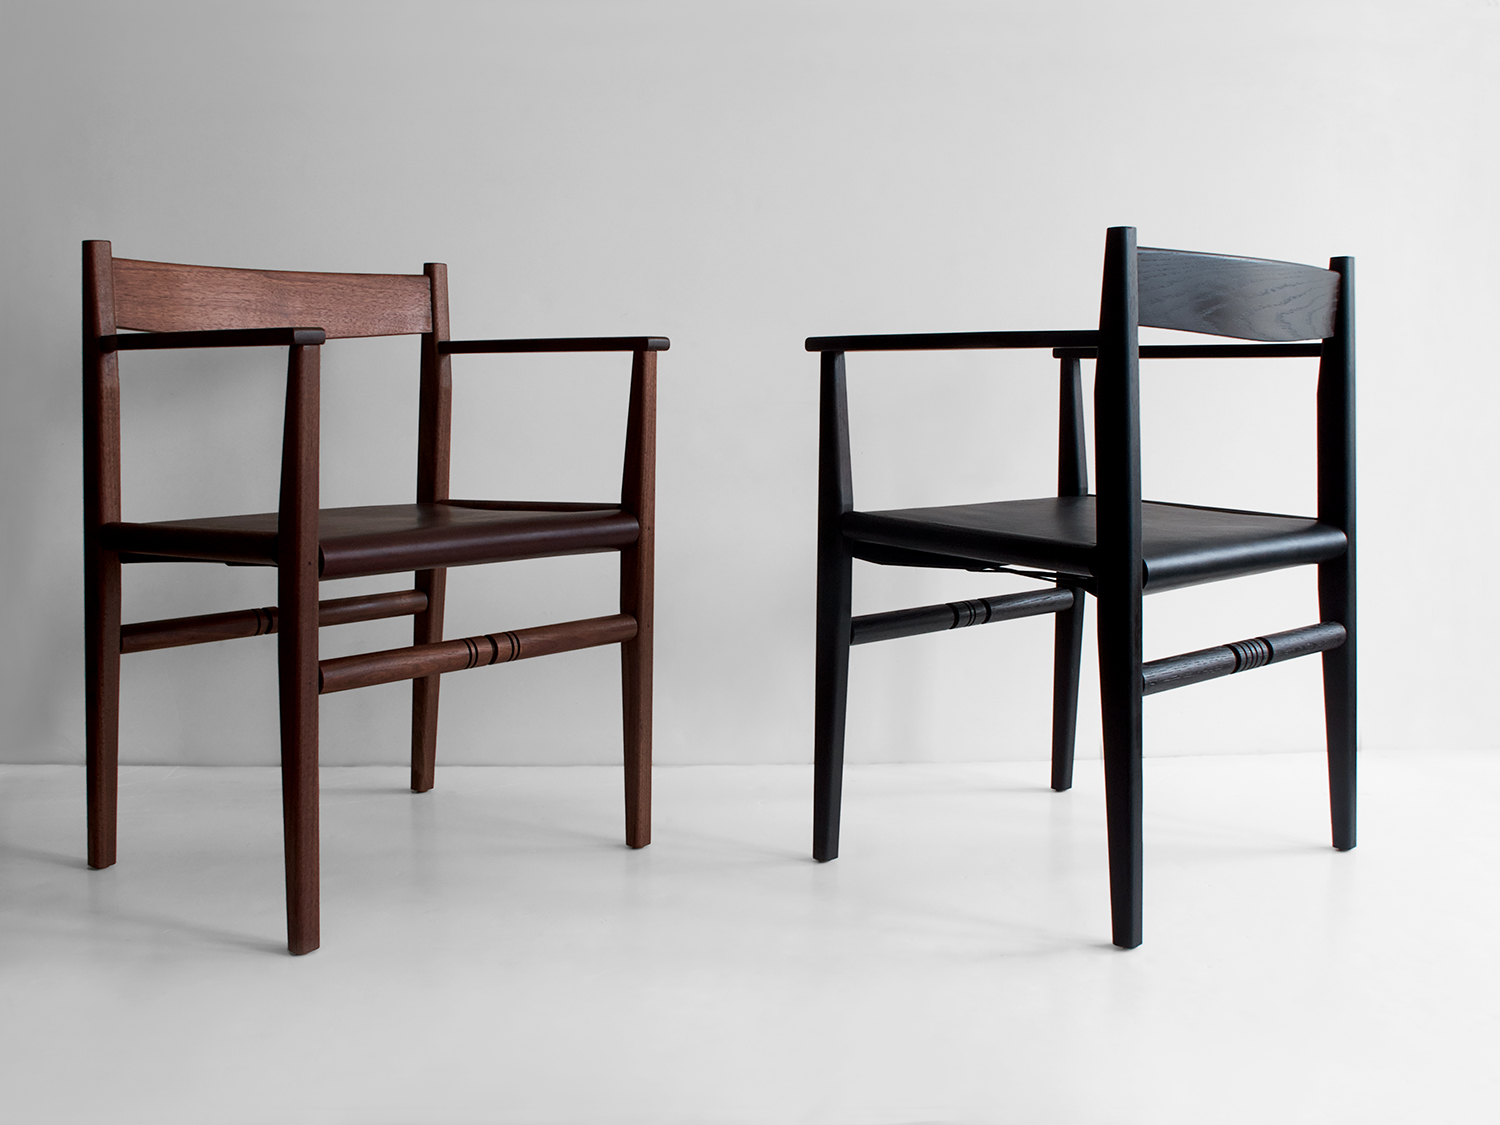 L to R: Black walnut, oxblood saddle leather Ebonized ash, black saddle leather